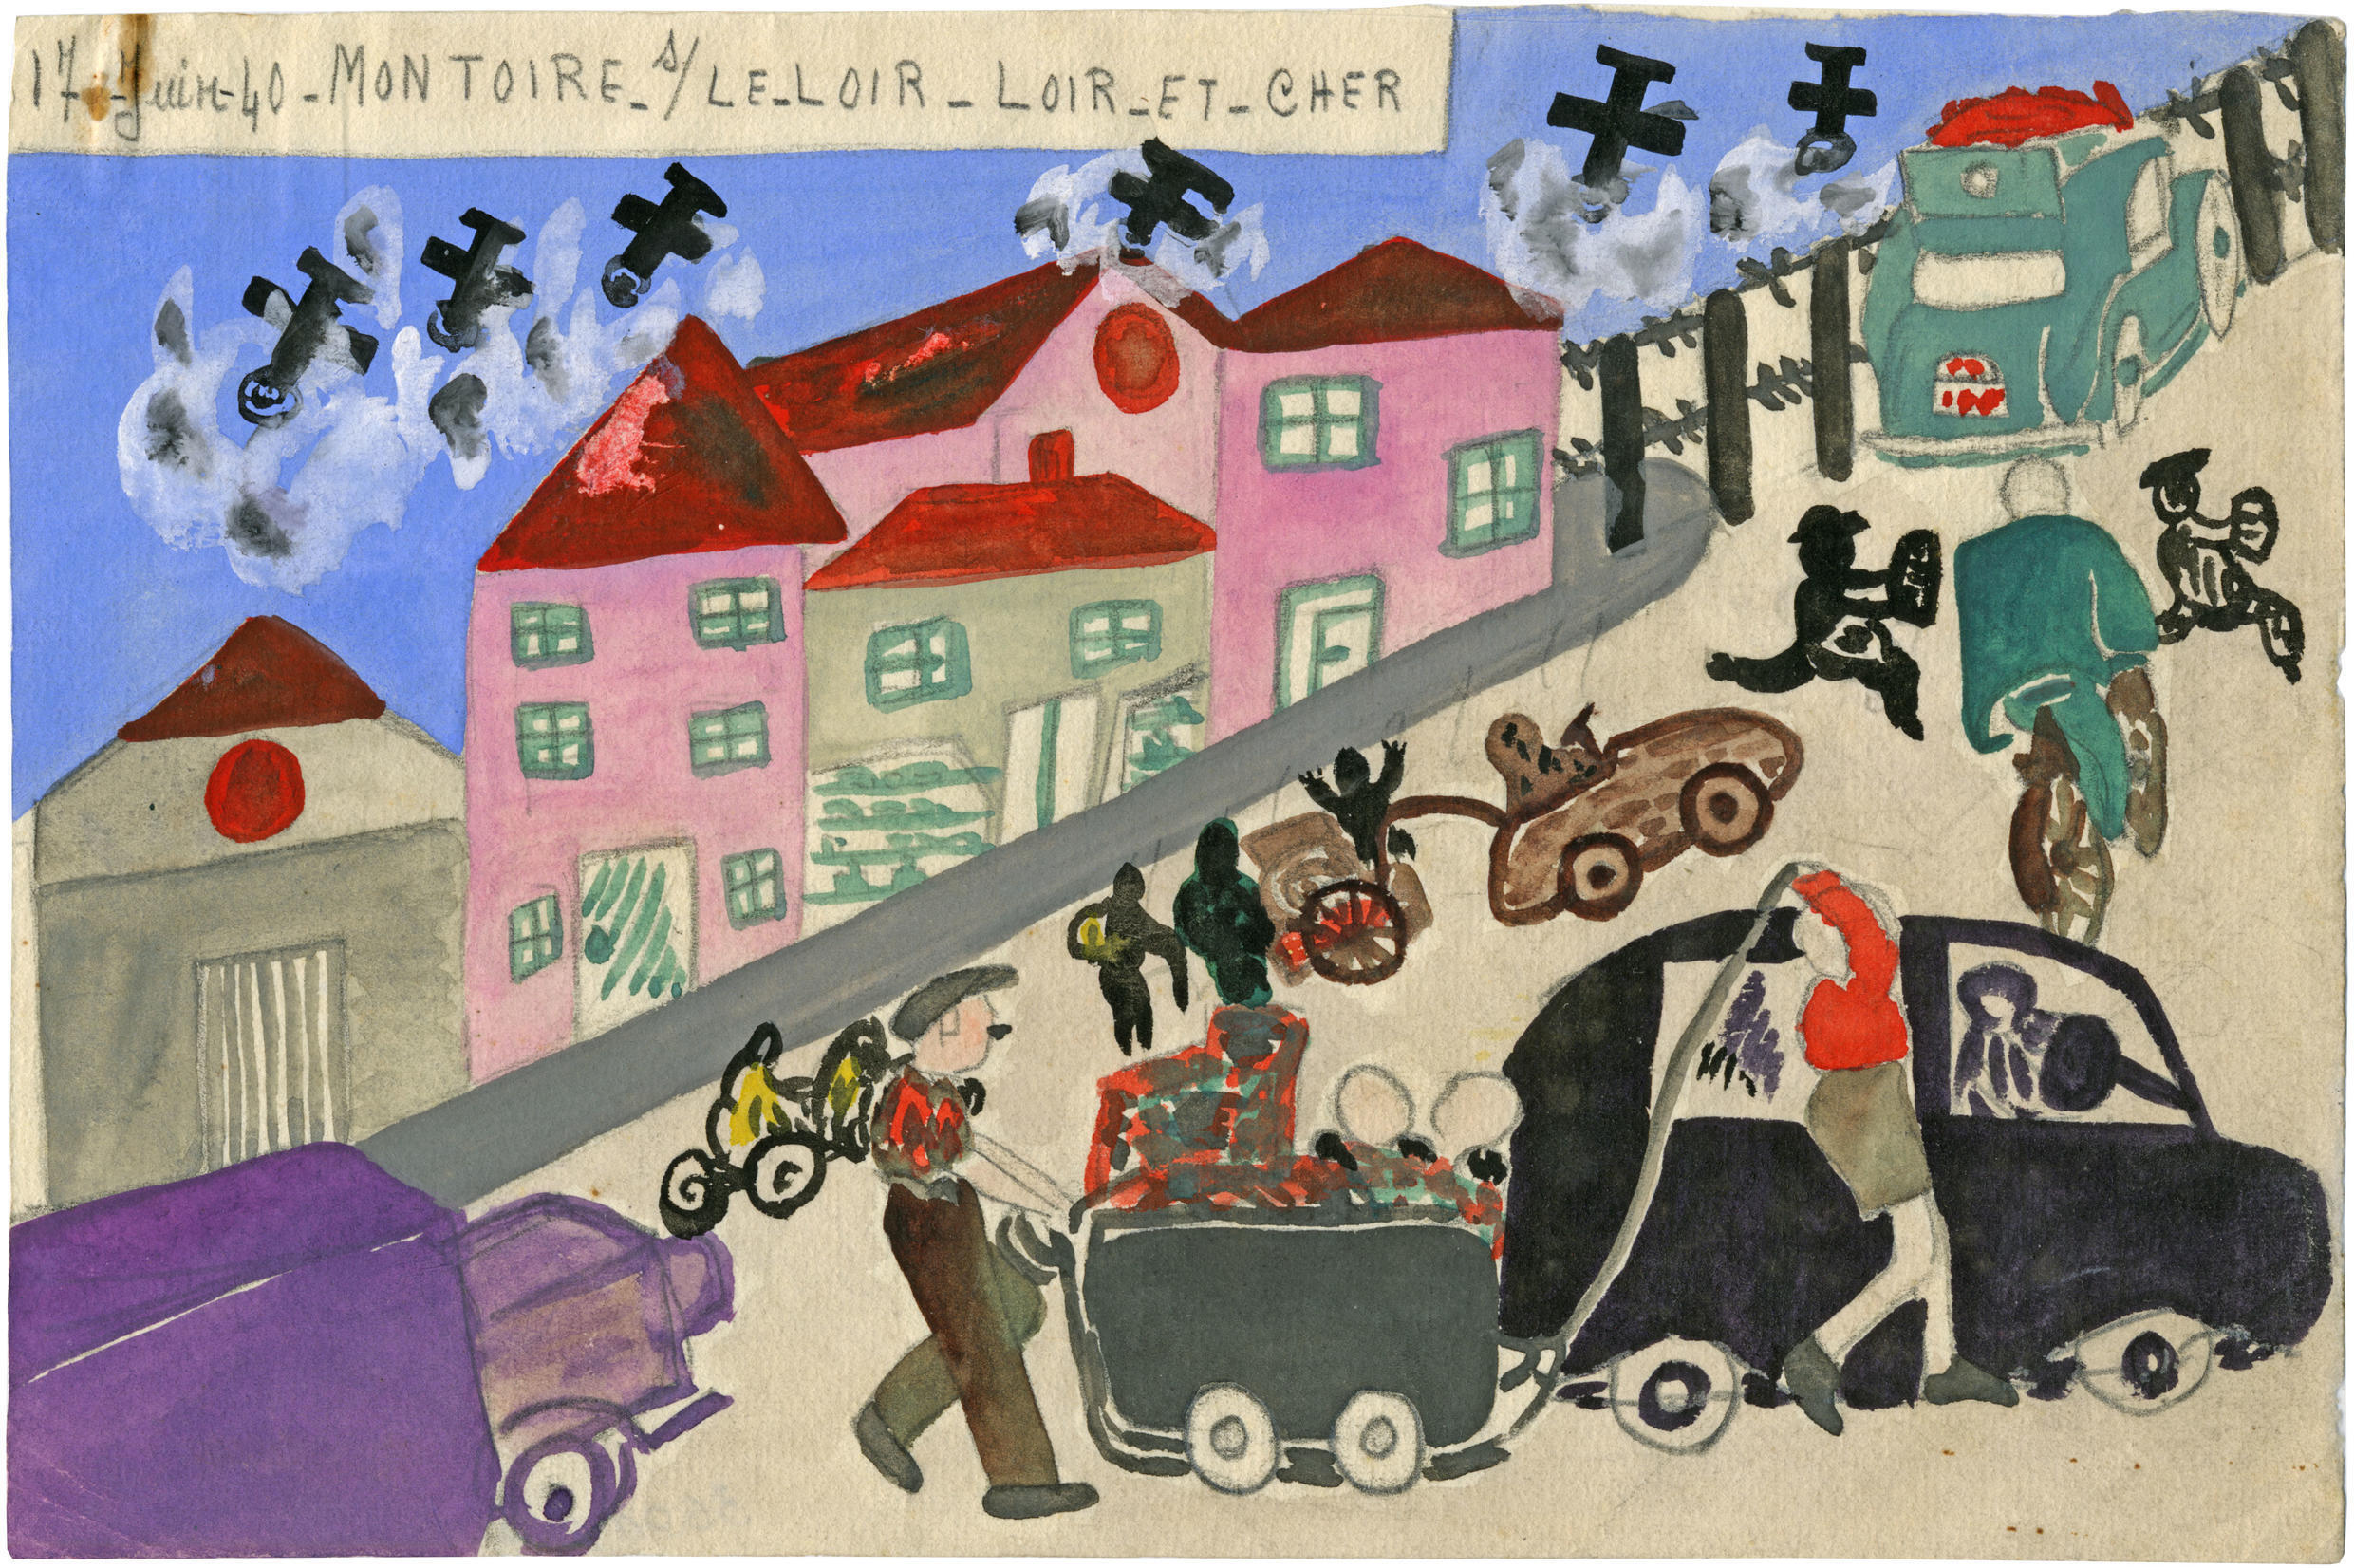 A drawing by a schoolgirl, Christiane Crosnier, shows refugees in Montoire sur le Loir, moving south  on 17 June 1940.